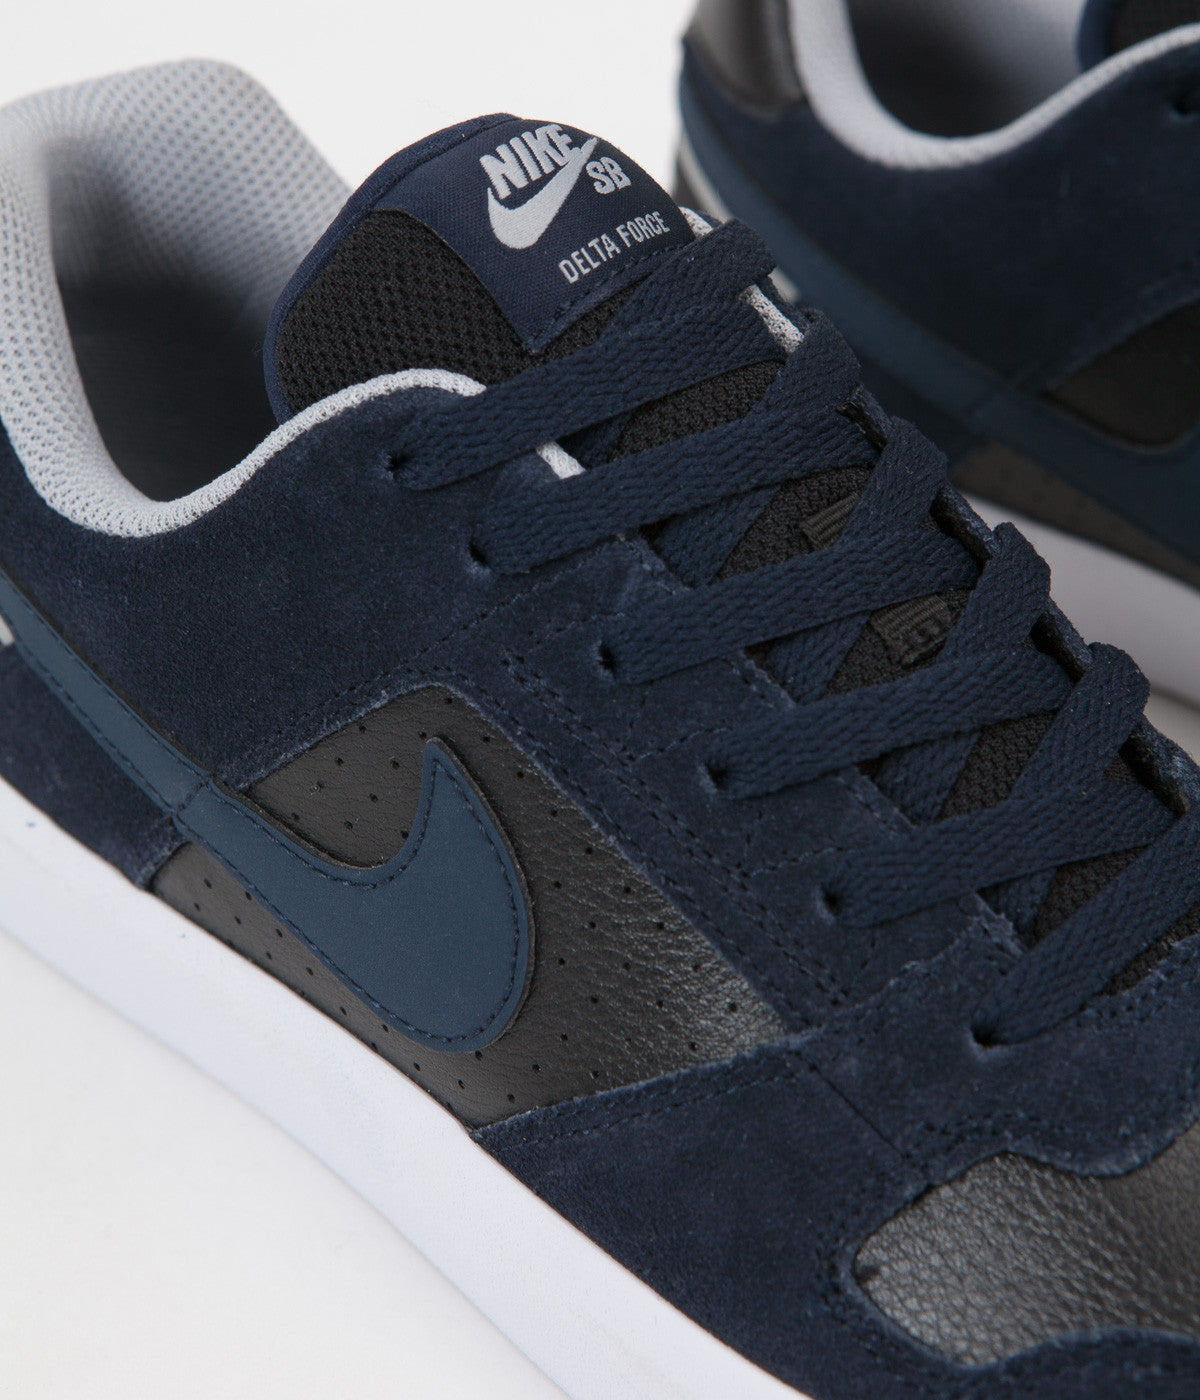 Nike SB Delta Force Vulc Shoes - Obsidian / Obsidian - Black - Wolf Grey